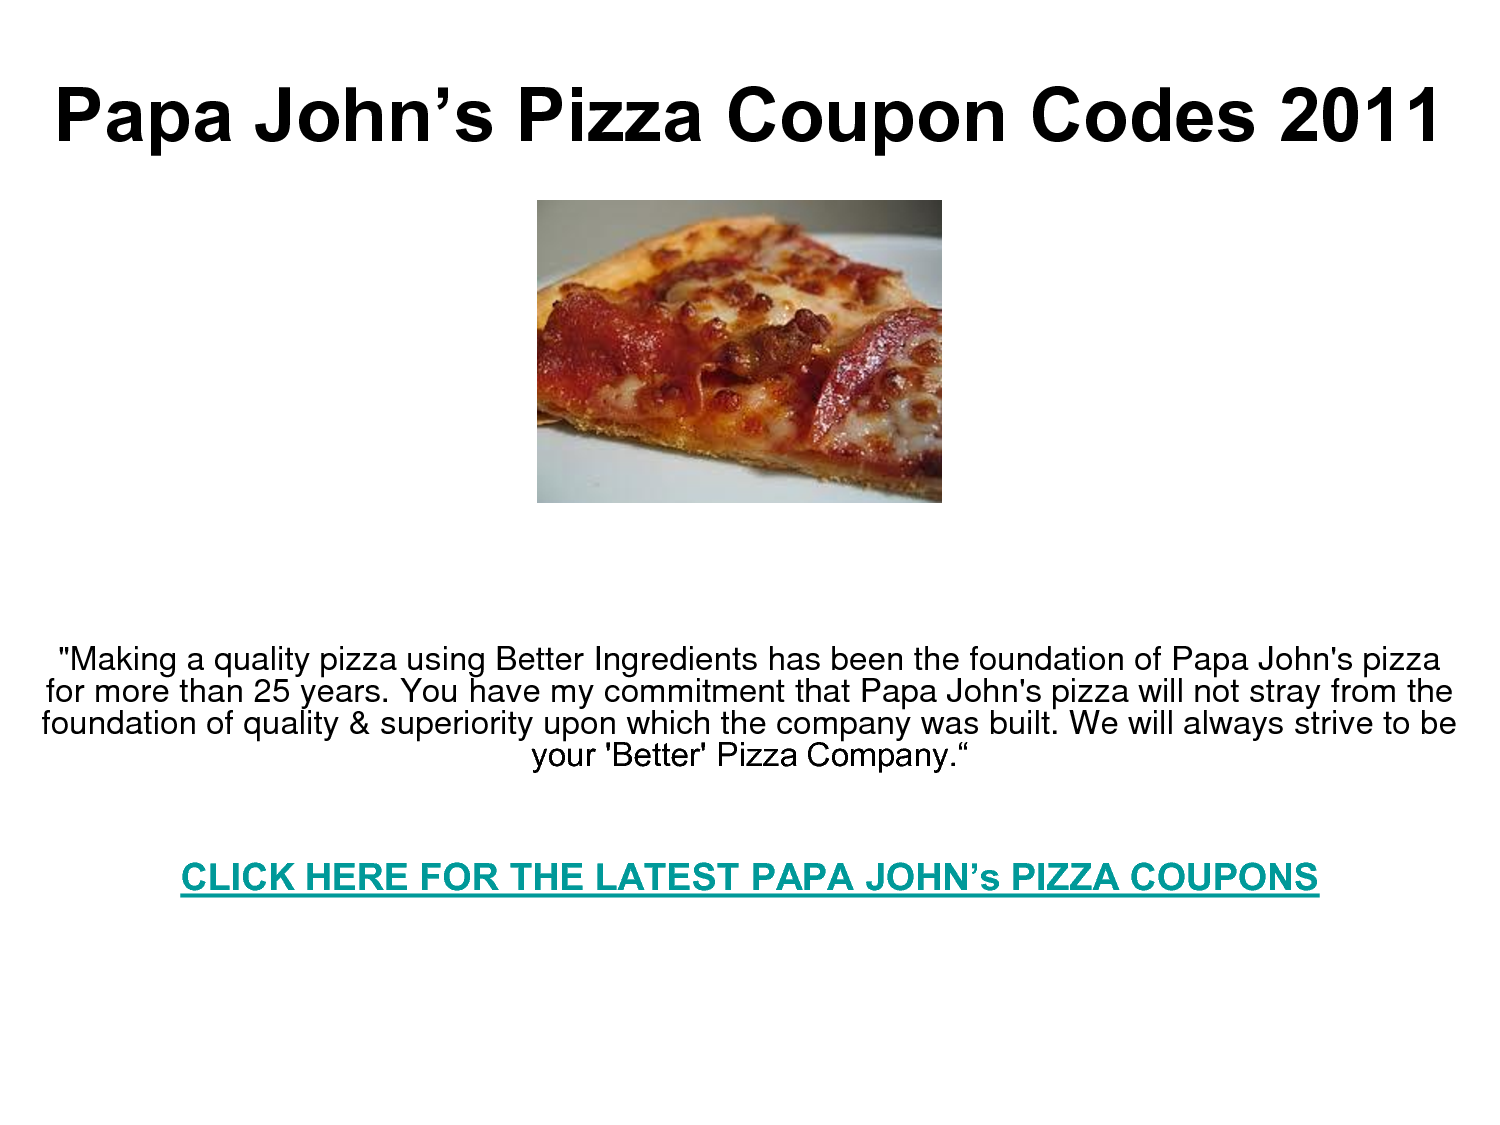 Coupon codes for free pizza